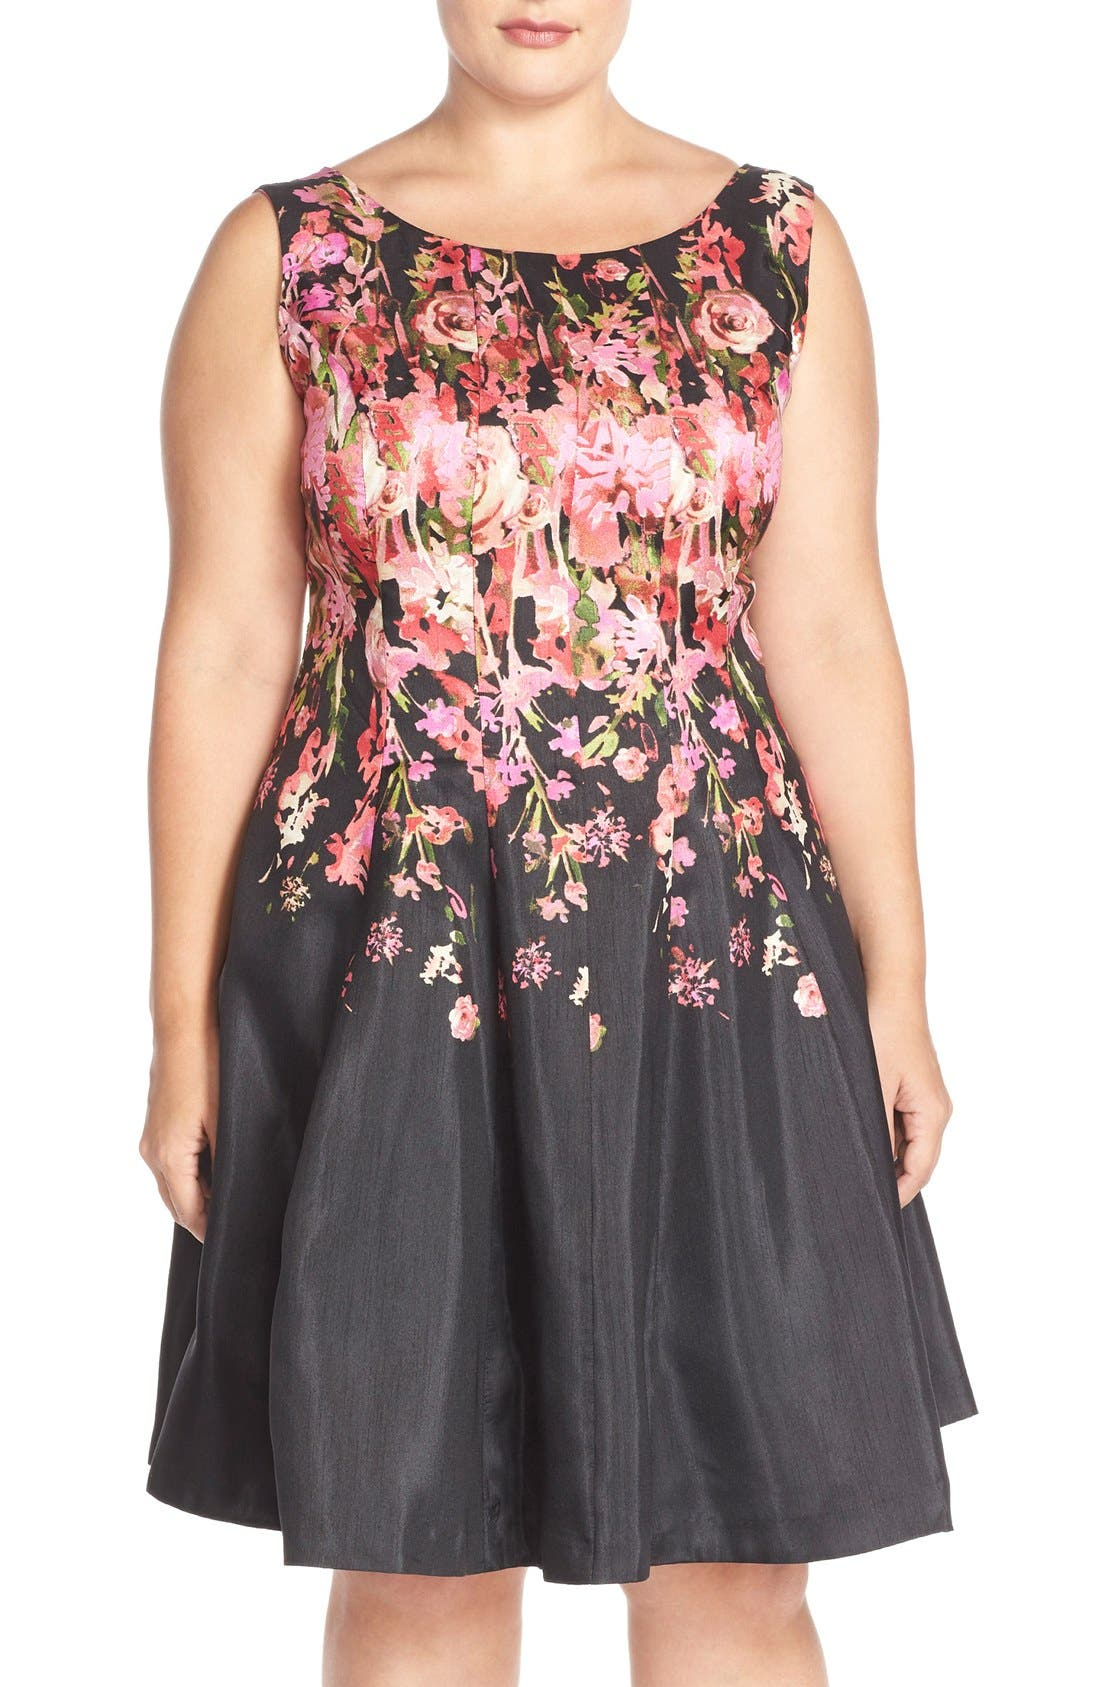 Alternate Image 1 Selected - Gabby Skye Floral Shantung Fit & Flare Dress (Plus Size)